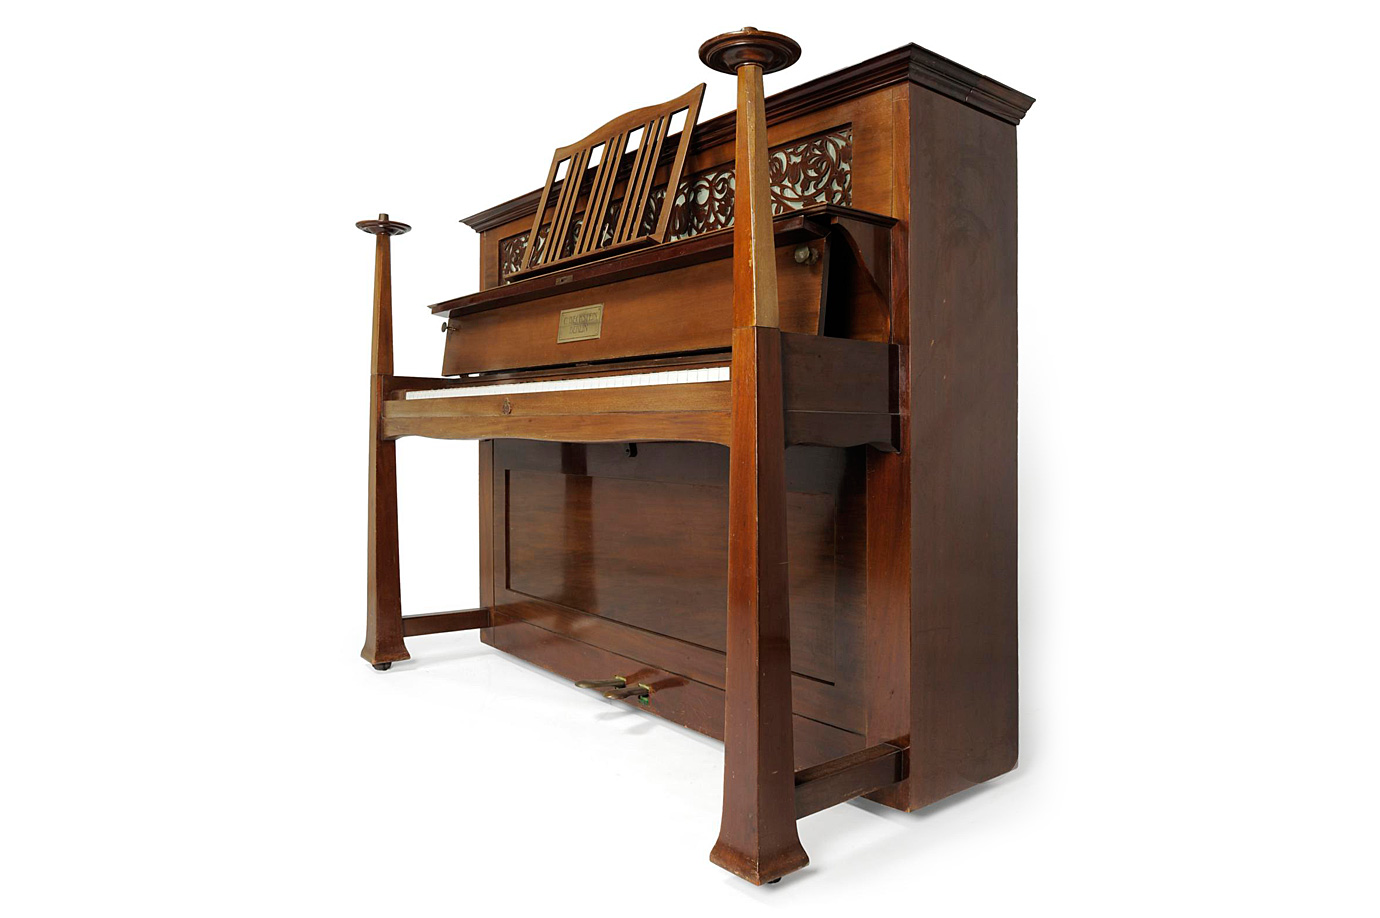 Walter Cave Bechstein upright piano